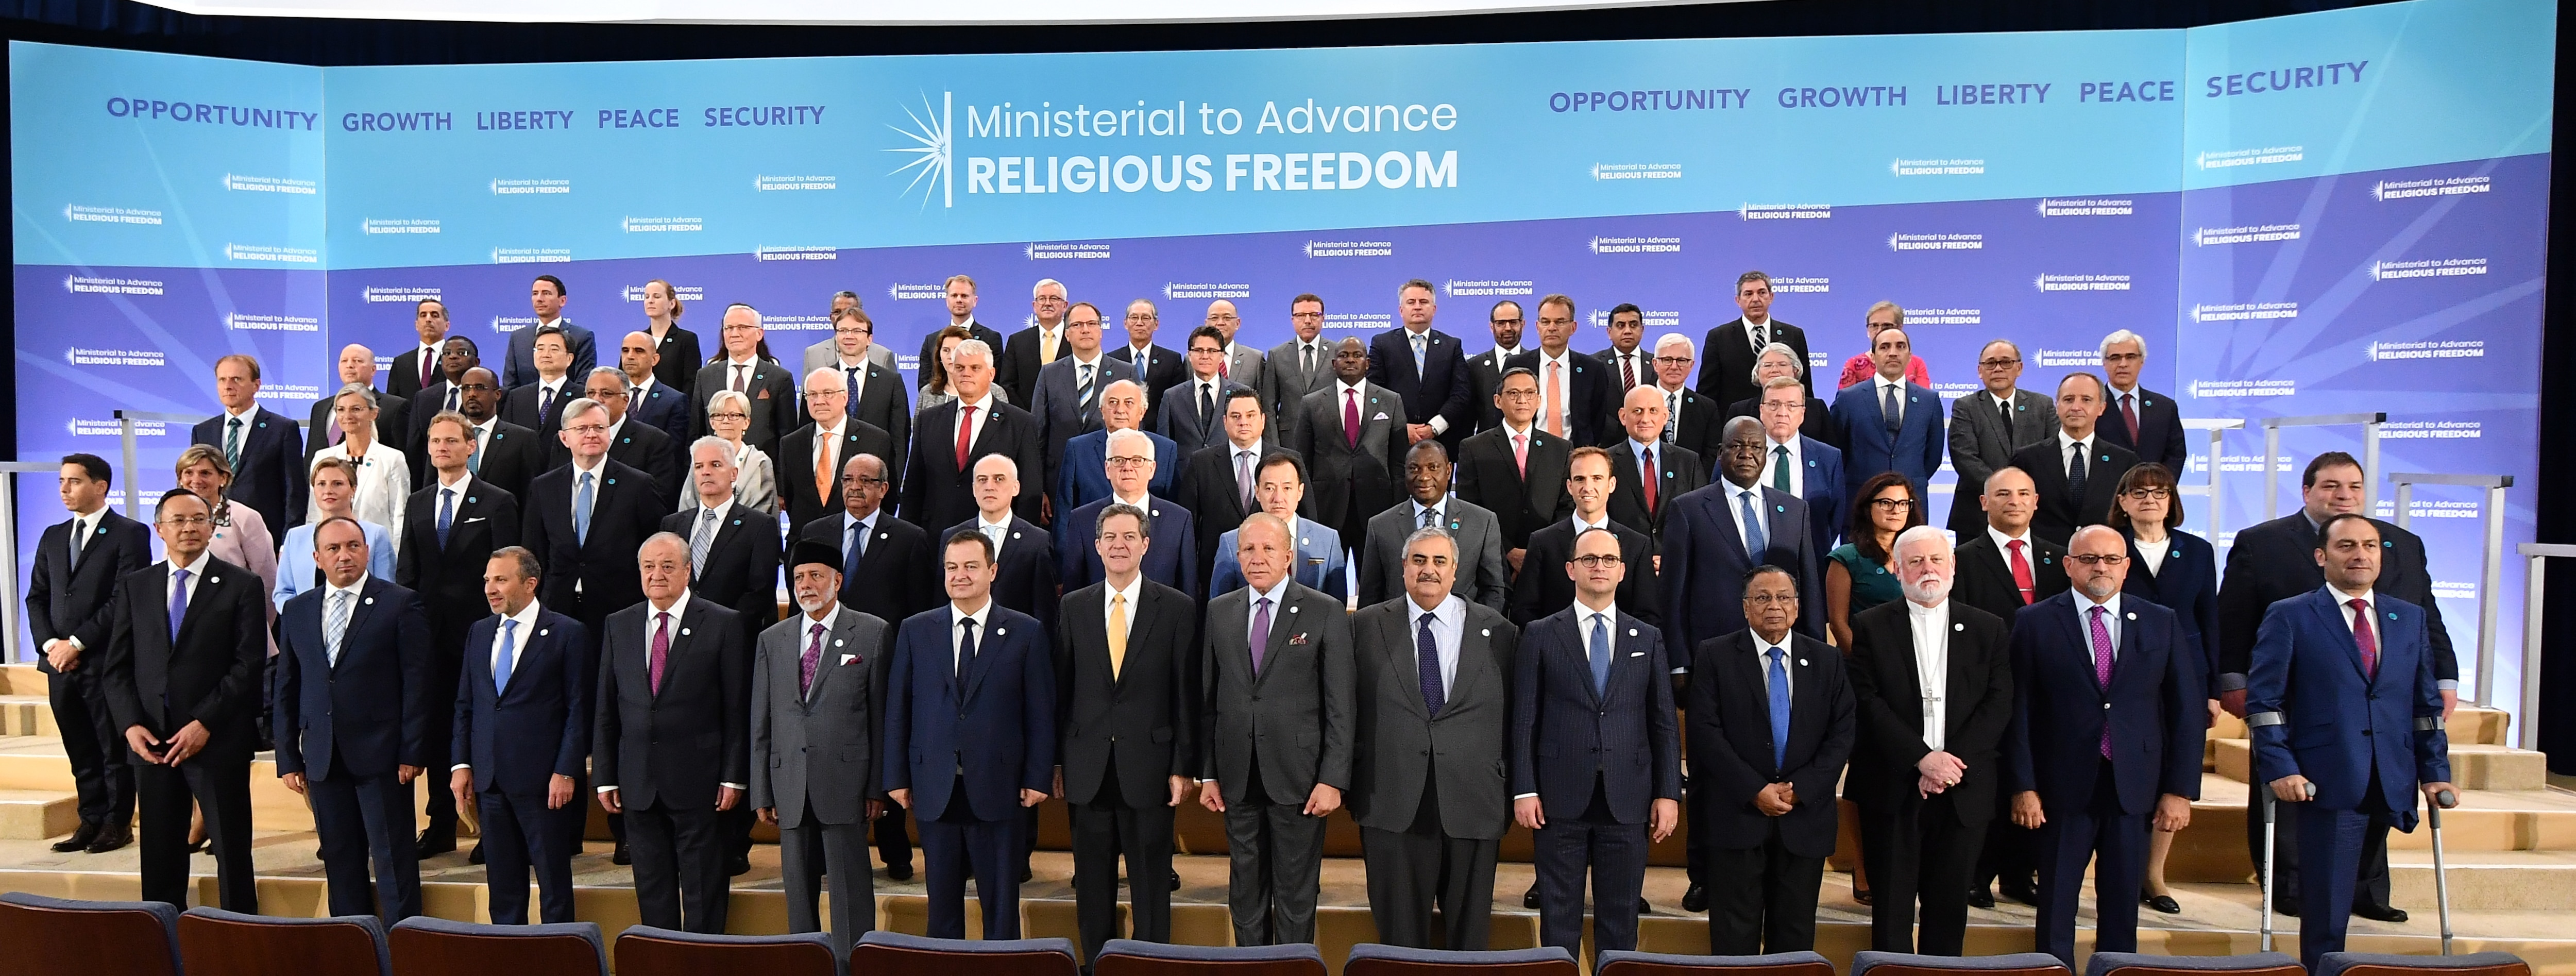 Ambassador Brownback and all Delegates pose for a family photo at the Ministerial to Advance Religious Freedom at the U.S. Department of State in Washington, D.C. on July 26 2018. [State Department Photo/Public Domain]